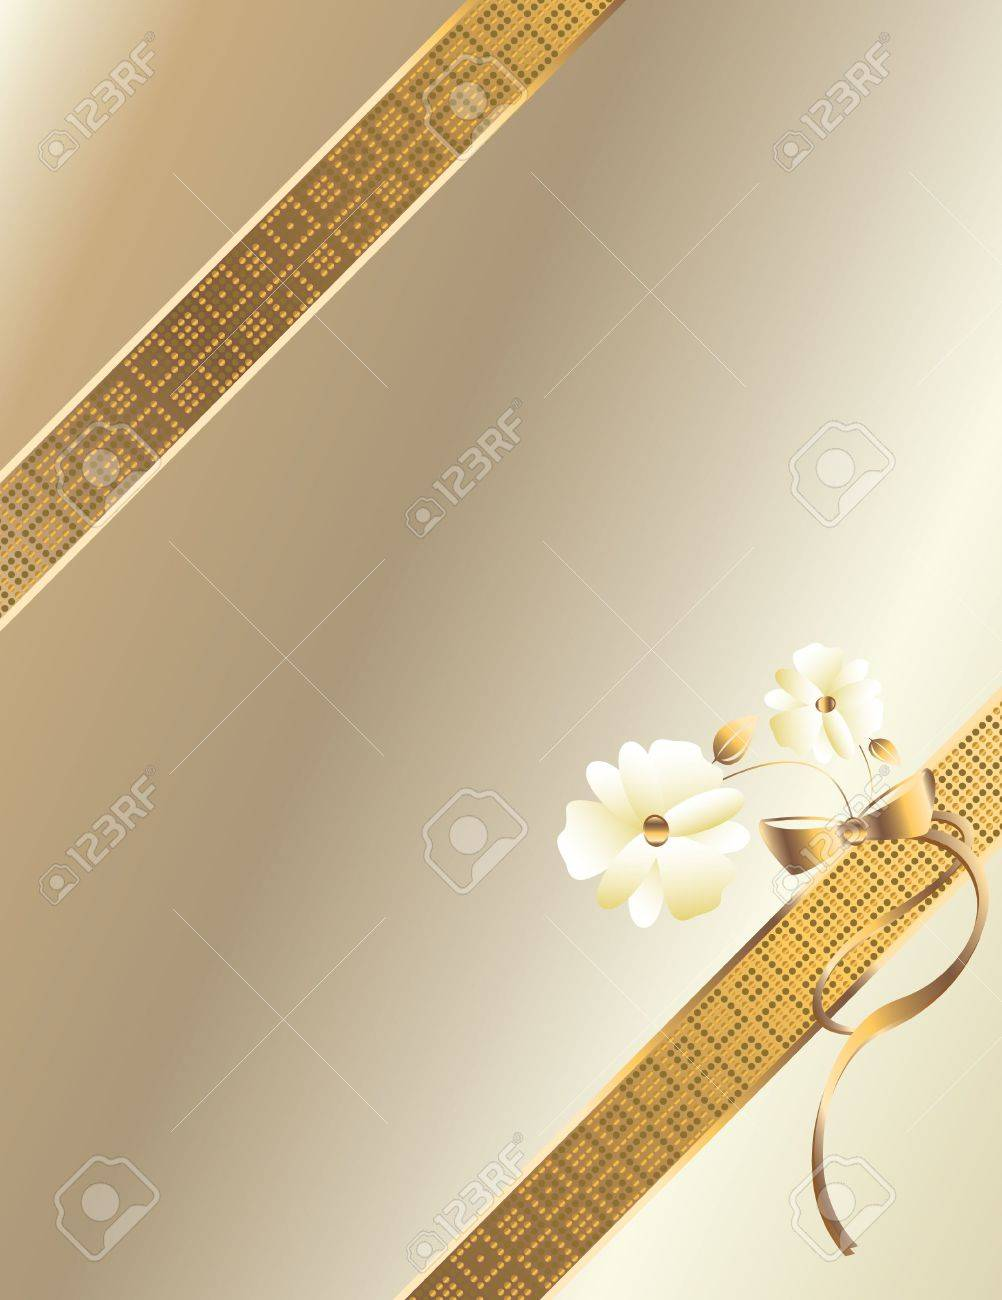 Gold ribbon  with flowers on a white background Stock Photo - 4020130